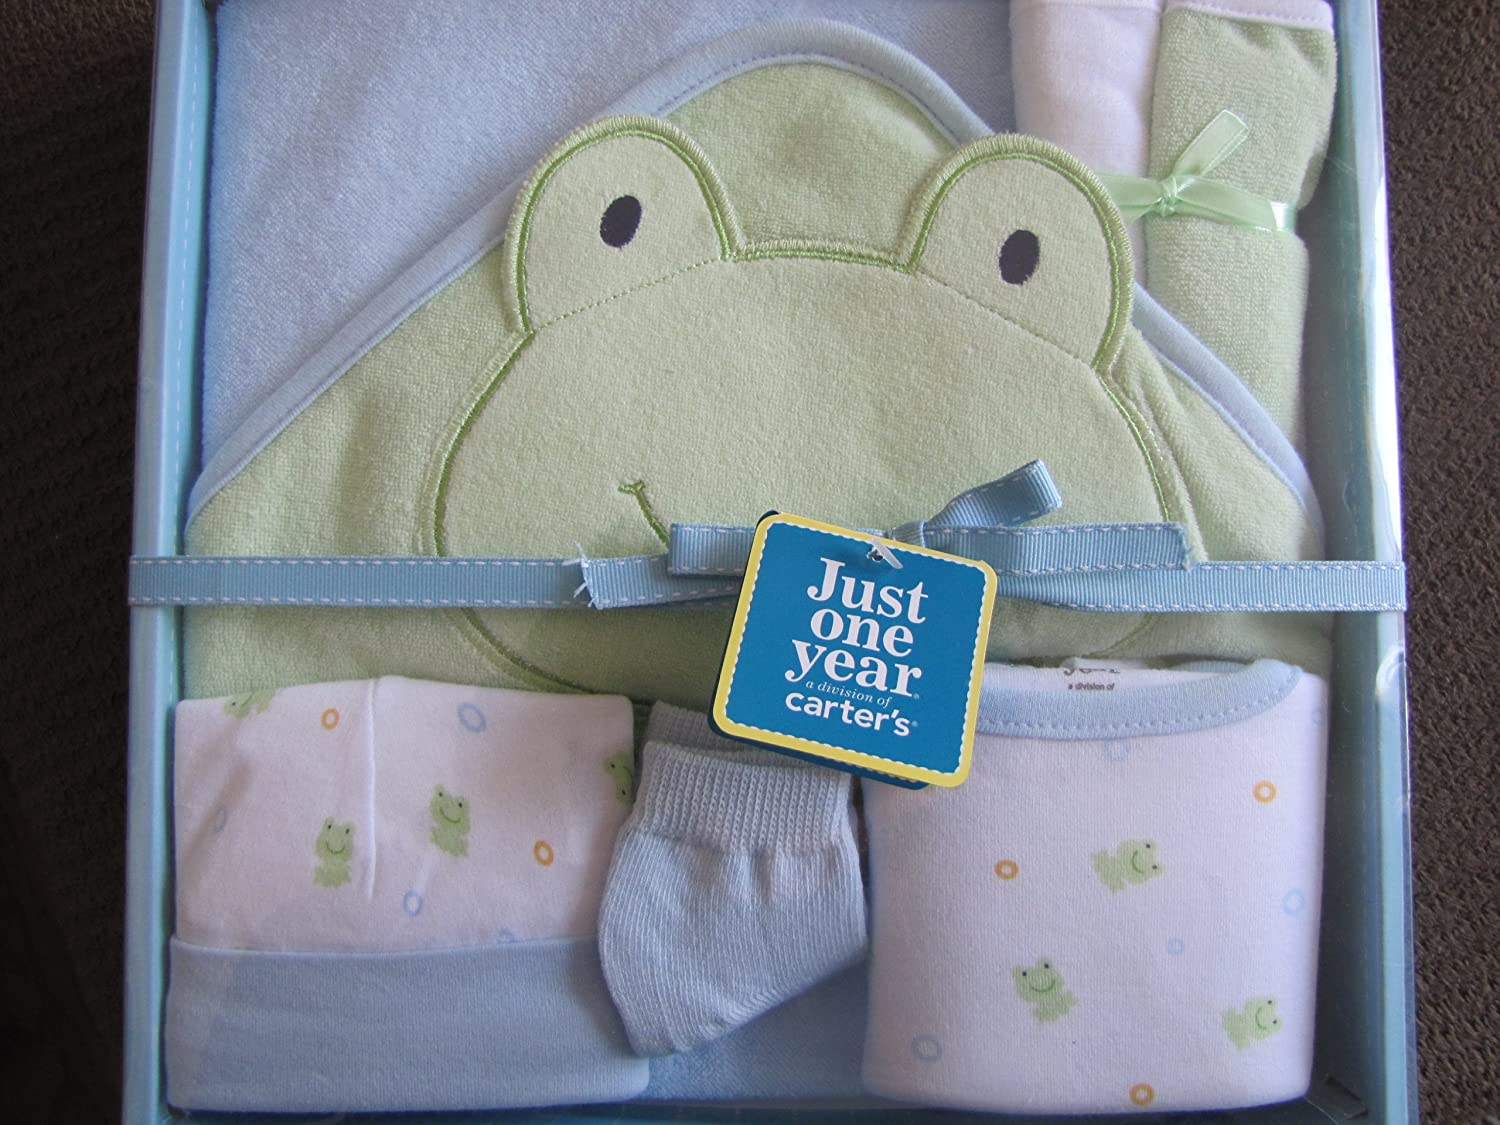 Amazon.com : Carters Just One Year 6 Piece Essentials Hooded Towel Gift Set : Hooded Baby Bath Towels : Baby